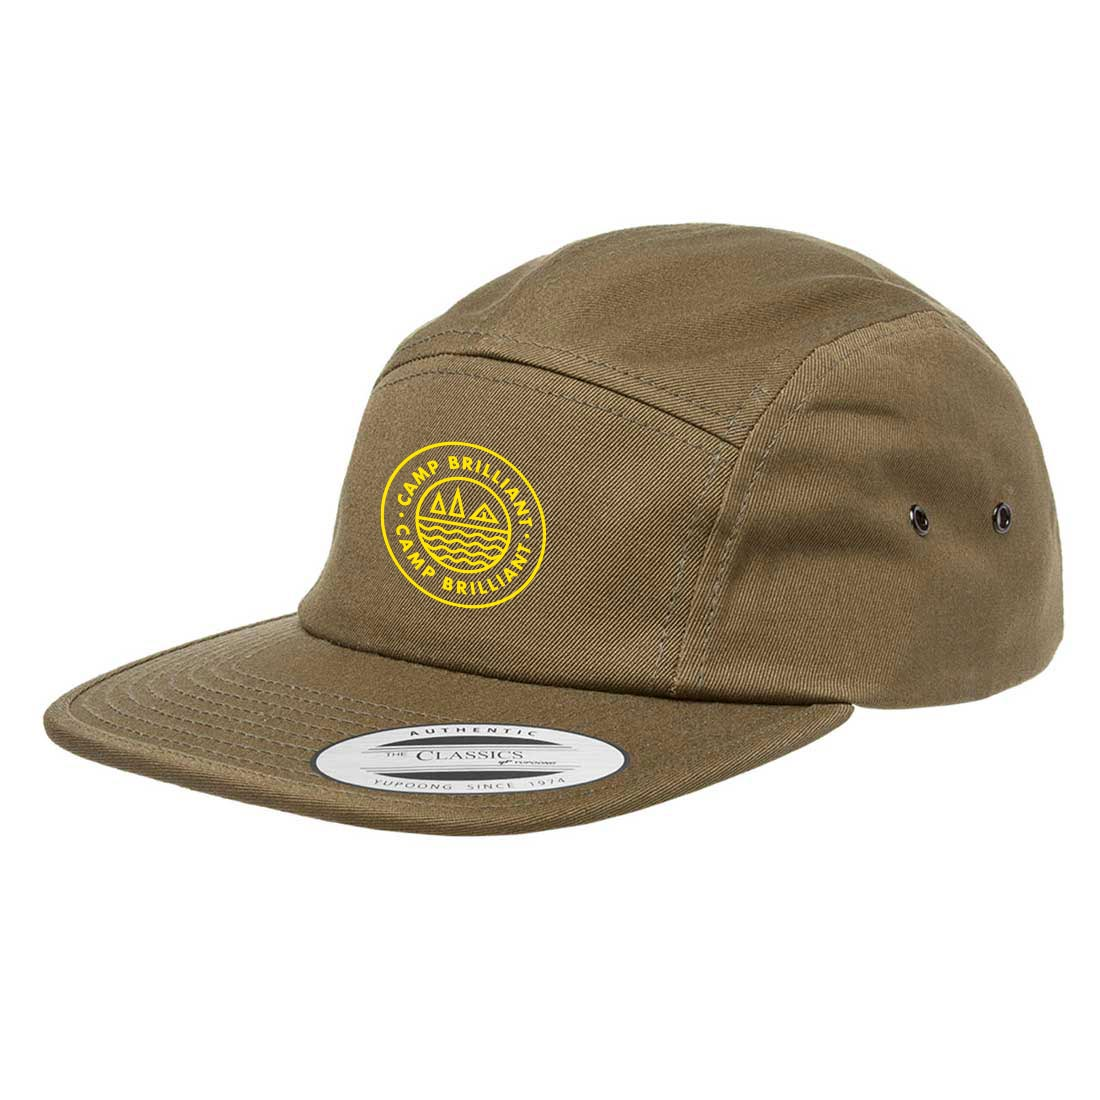 229138 presley camper cap one color one location imprint